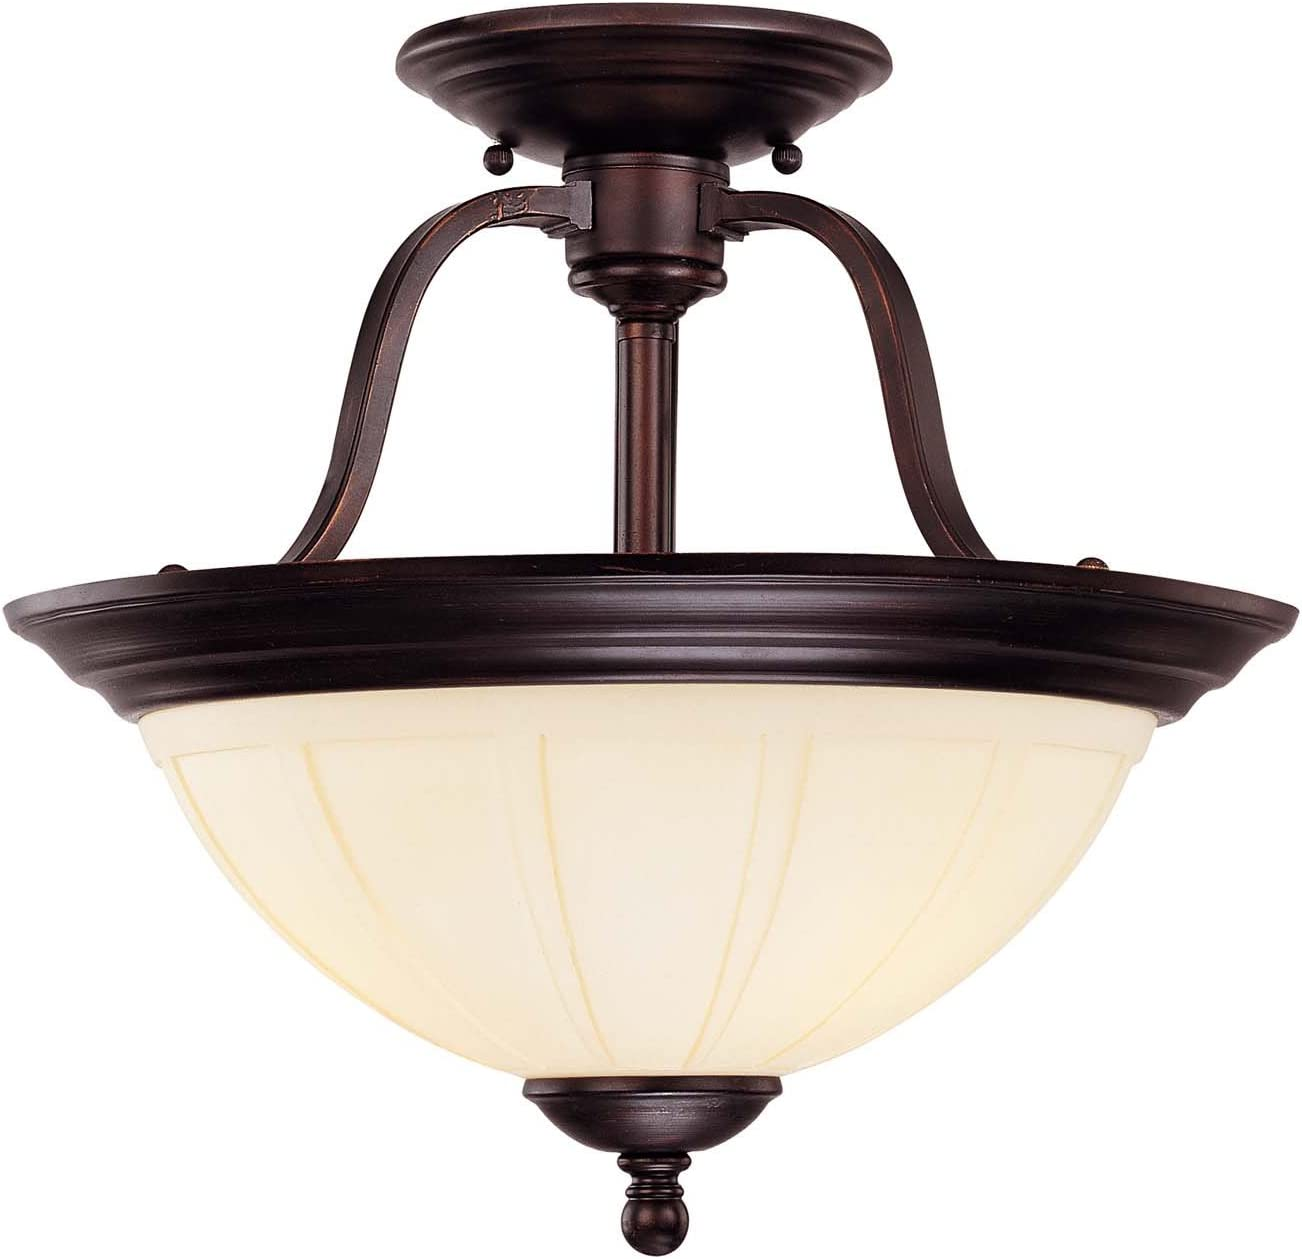 Savoy House 6-6906-3-13 Semi-Flush with Cream Opal Etched Shades, English Bronze Finish